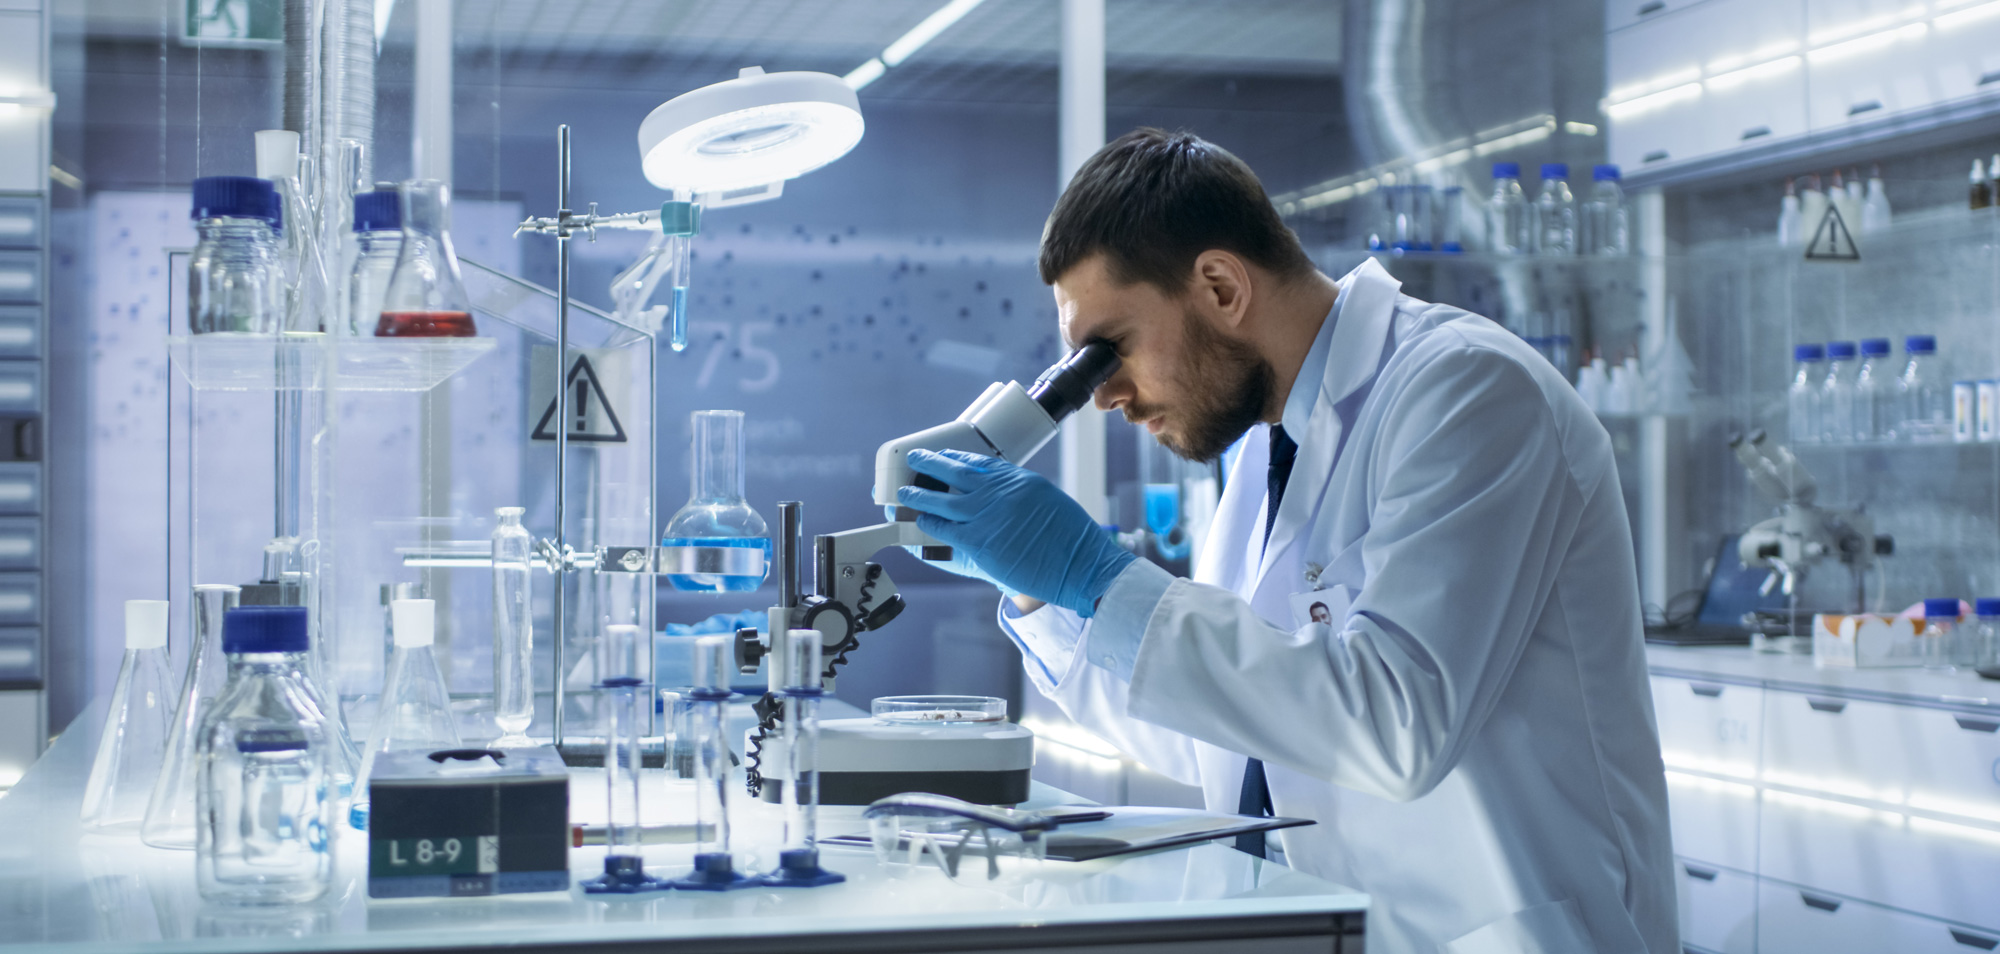 Surgical strike against science and scholarship